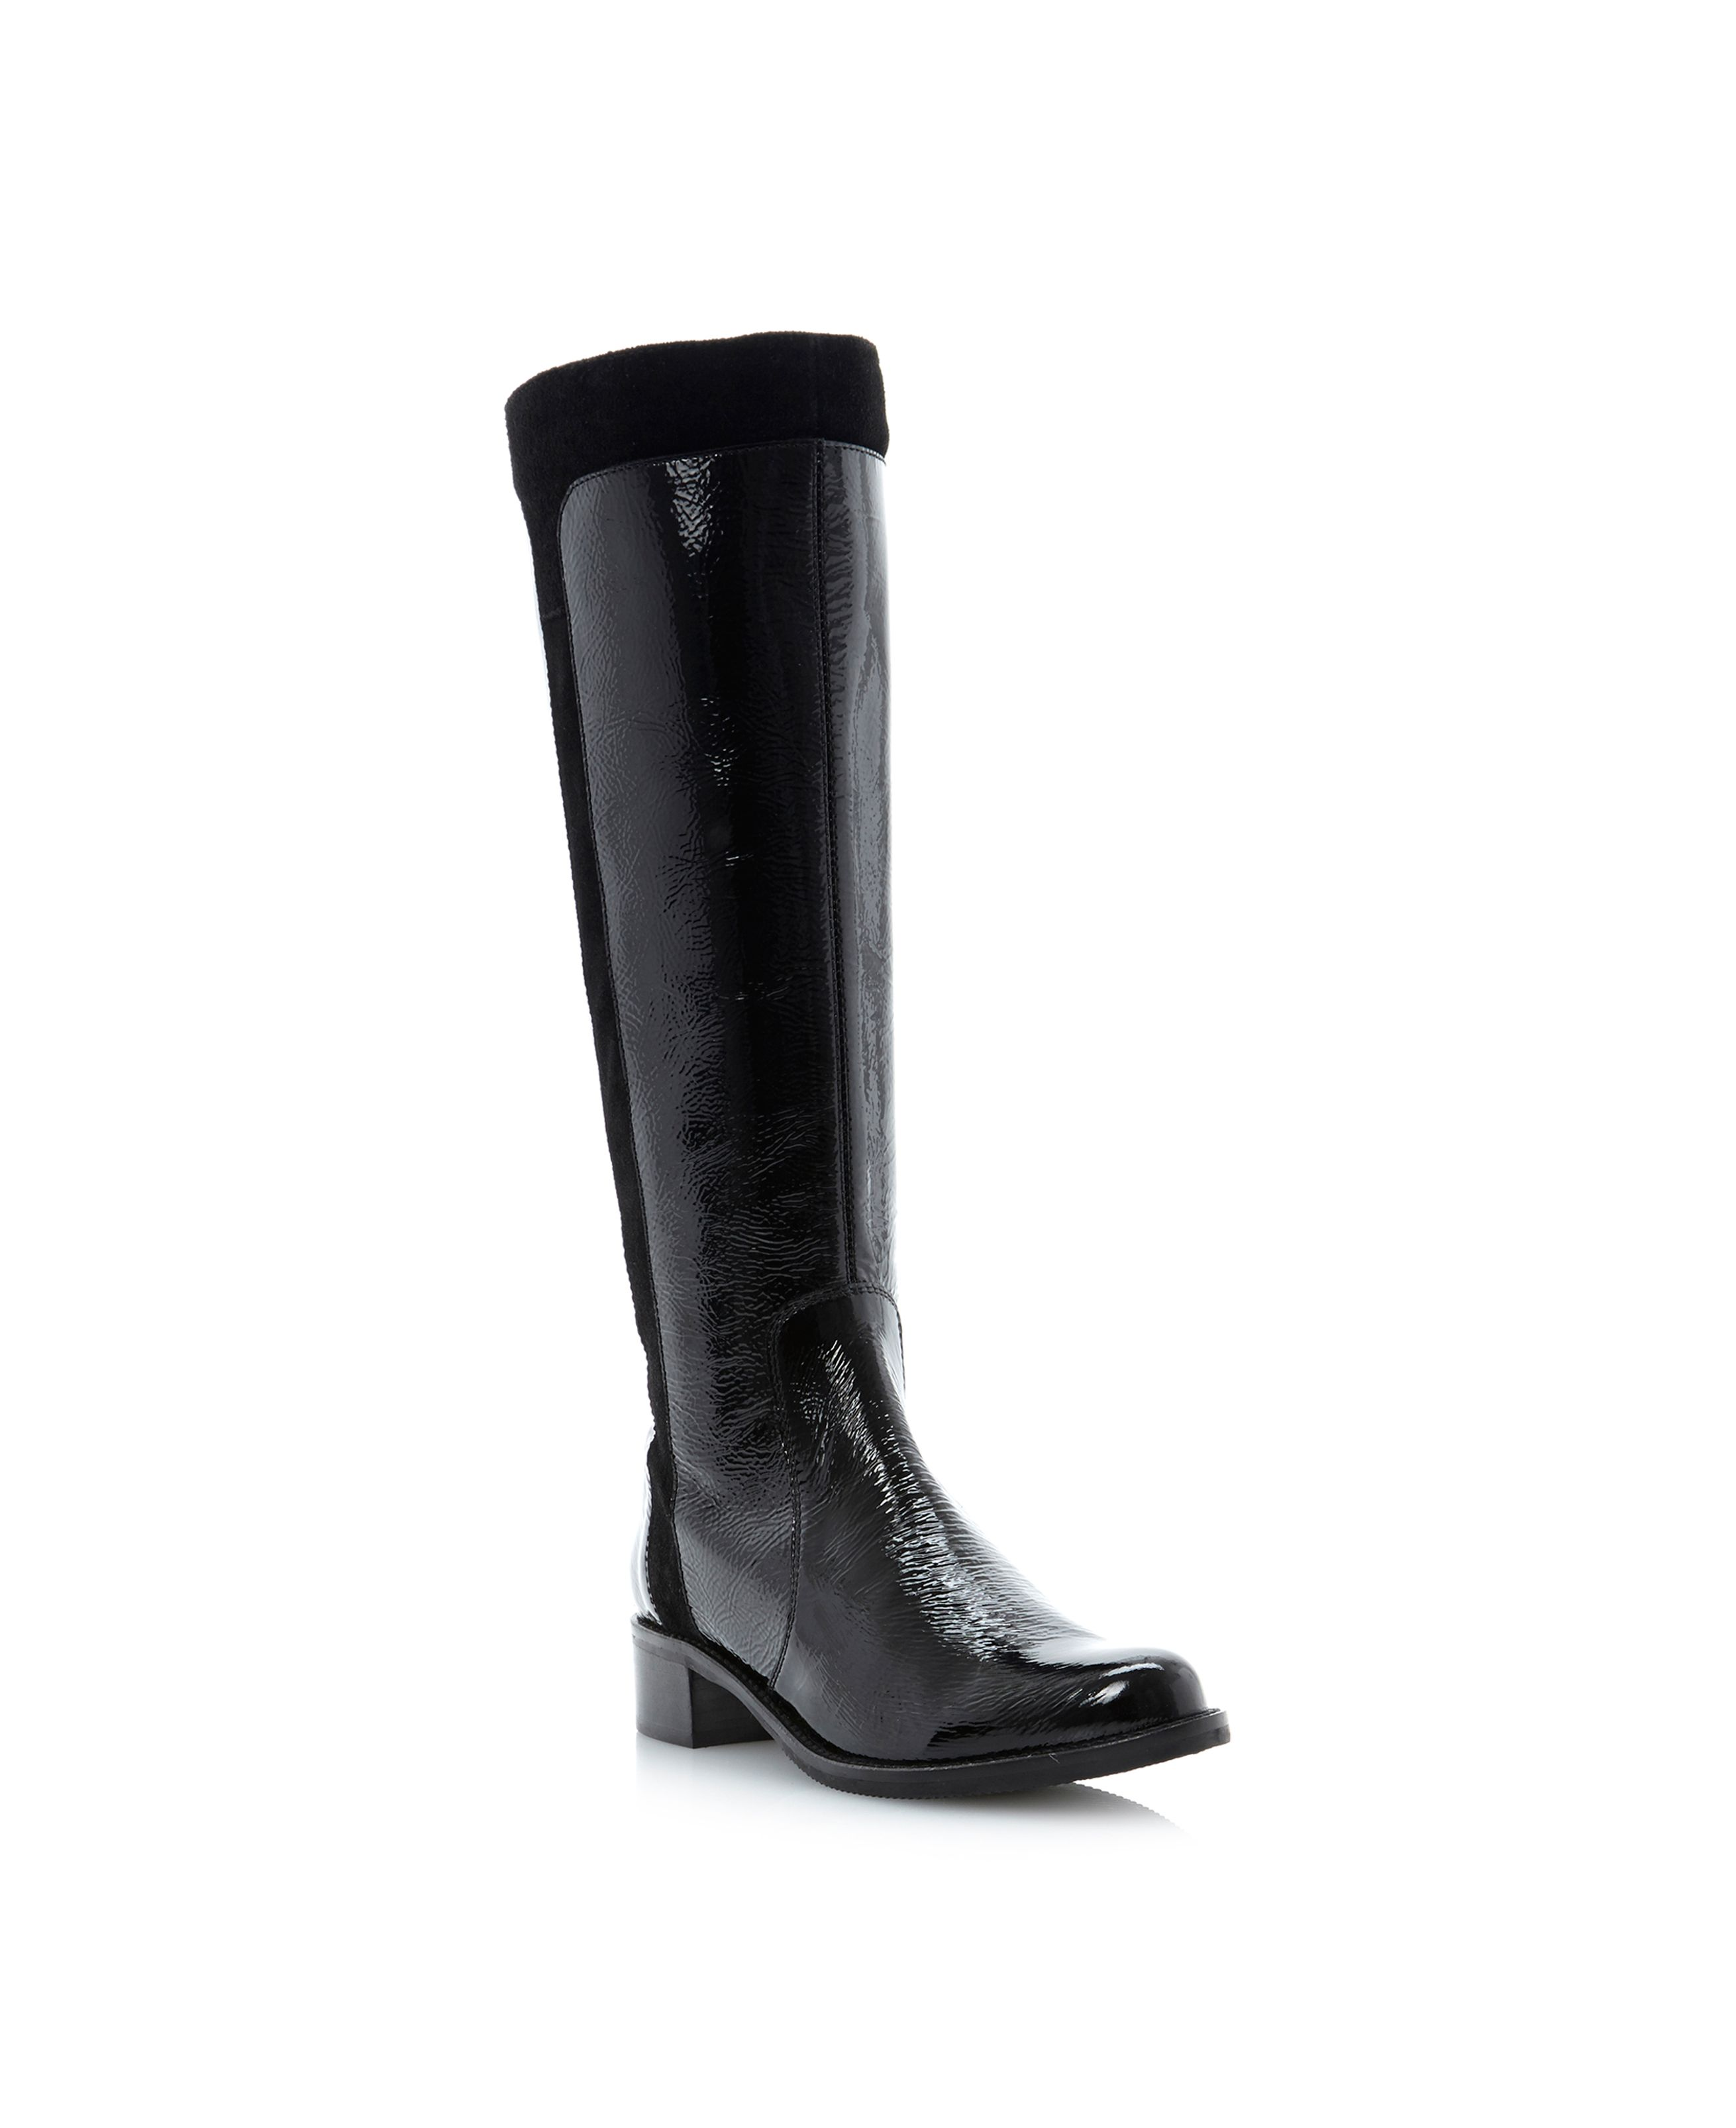 Trott double buckle mix material high boots